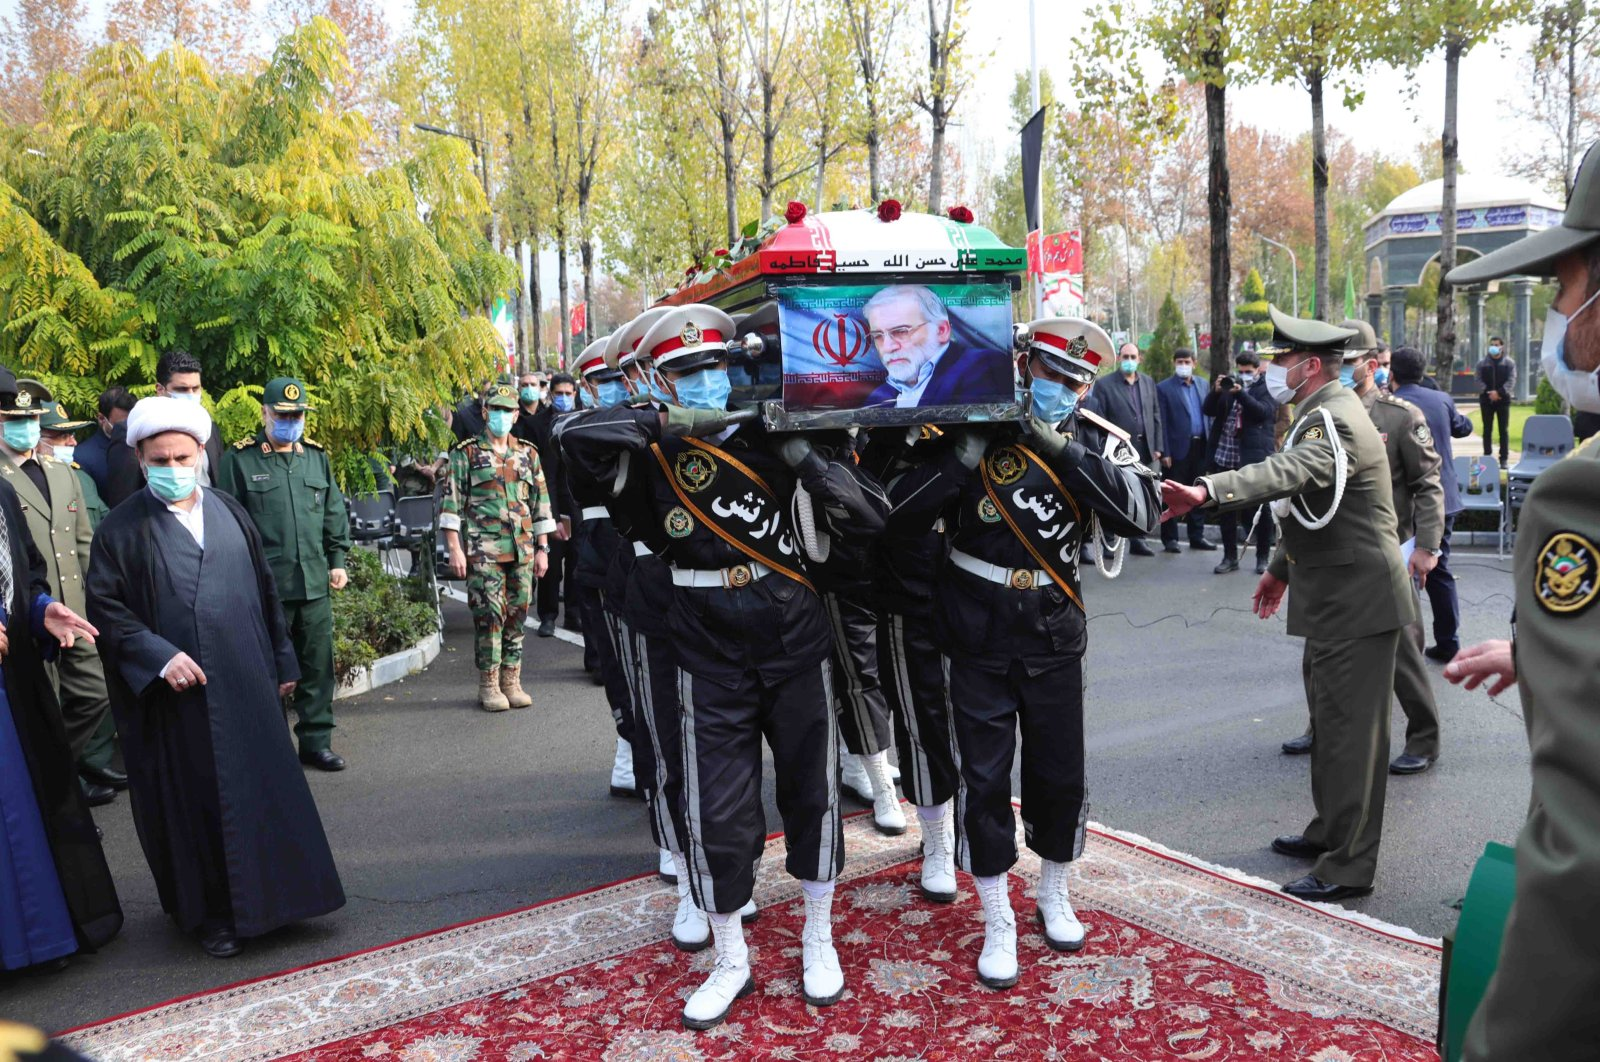 A handout photo made available by the Iranian defense ministry office shows soldiers carrying the coffin of slain Iranian nuclear scientist Mohsen Fakhrizadeh during a funeral procession inside the Iranian defense ministry in Tehran, Iran, Nov. 30, 2020. (EPA Photo)